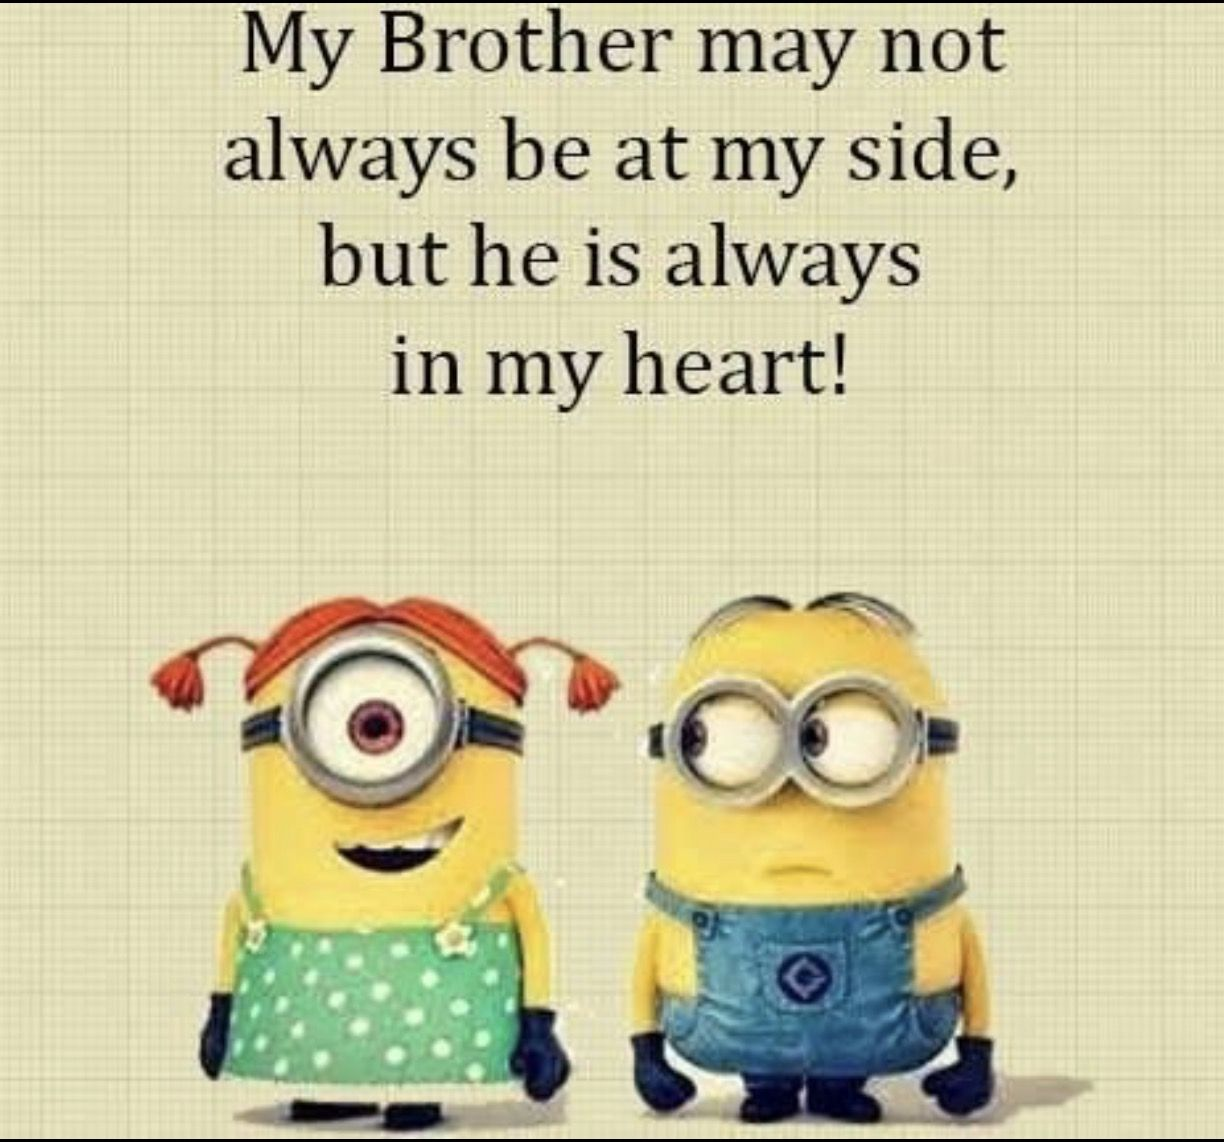 Pin By Pancake Pixie On Work Cute Brother Quotes Brother Quotes Brother Birthday Quotes